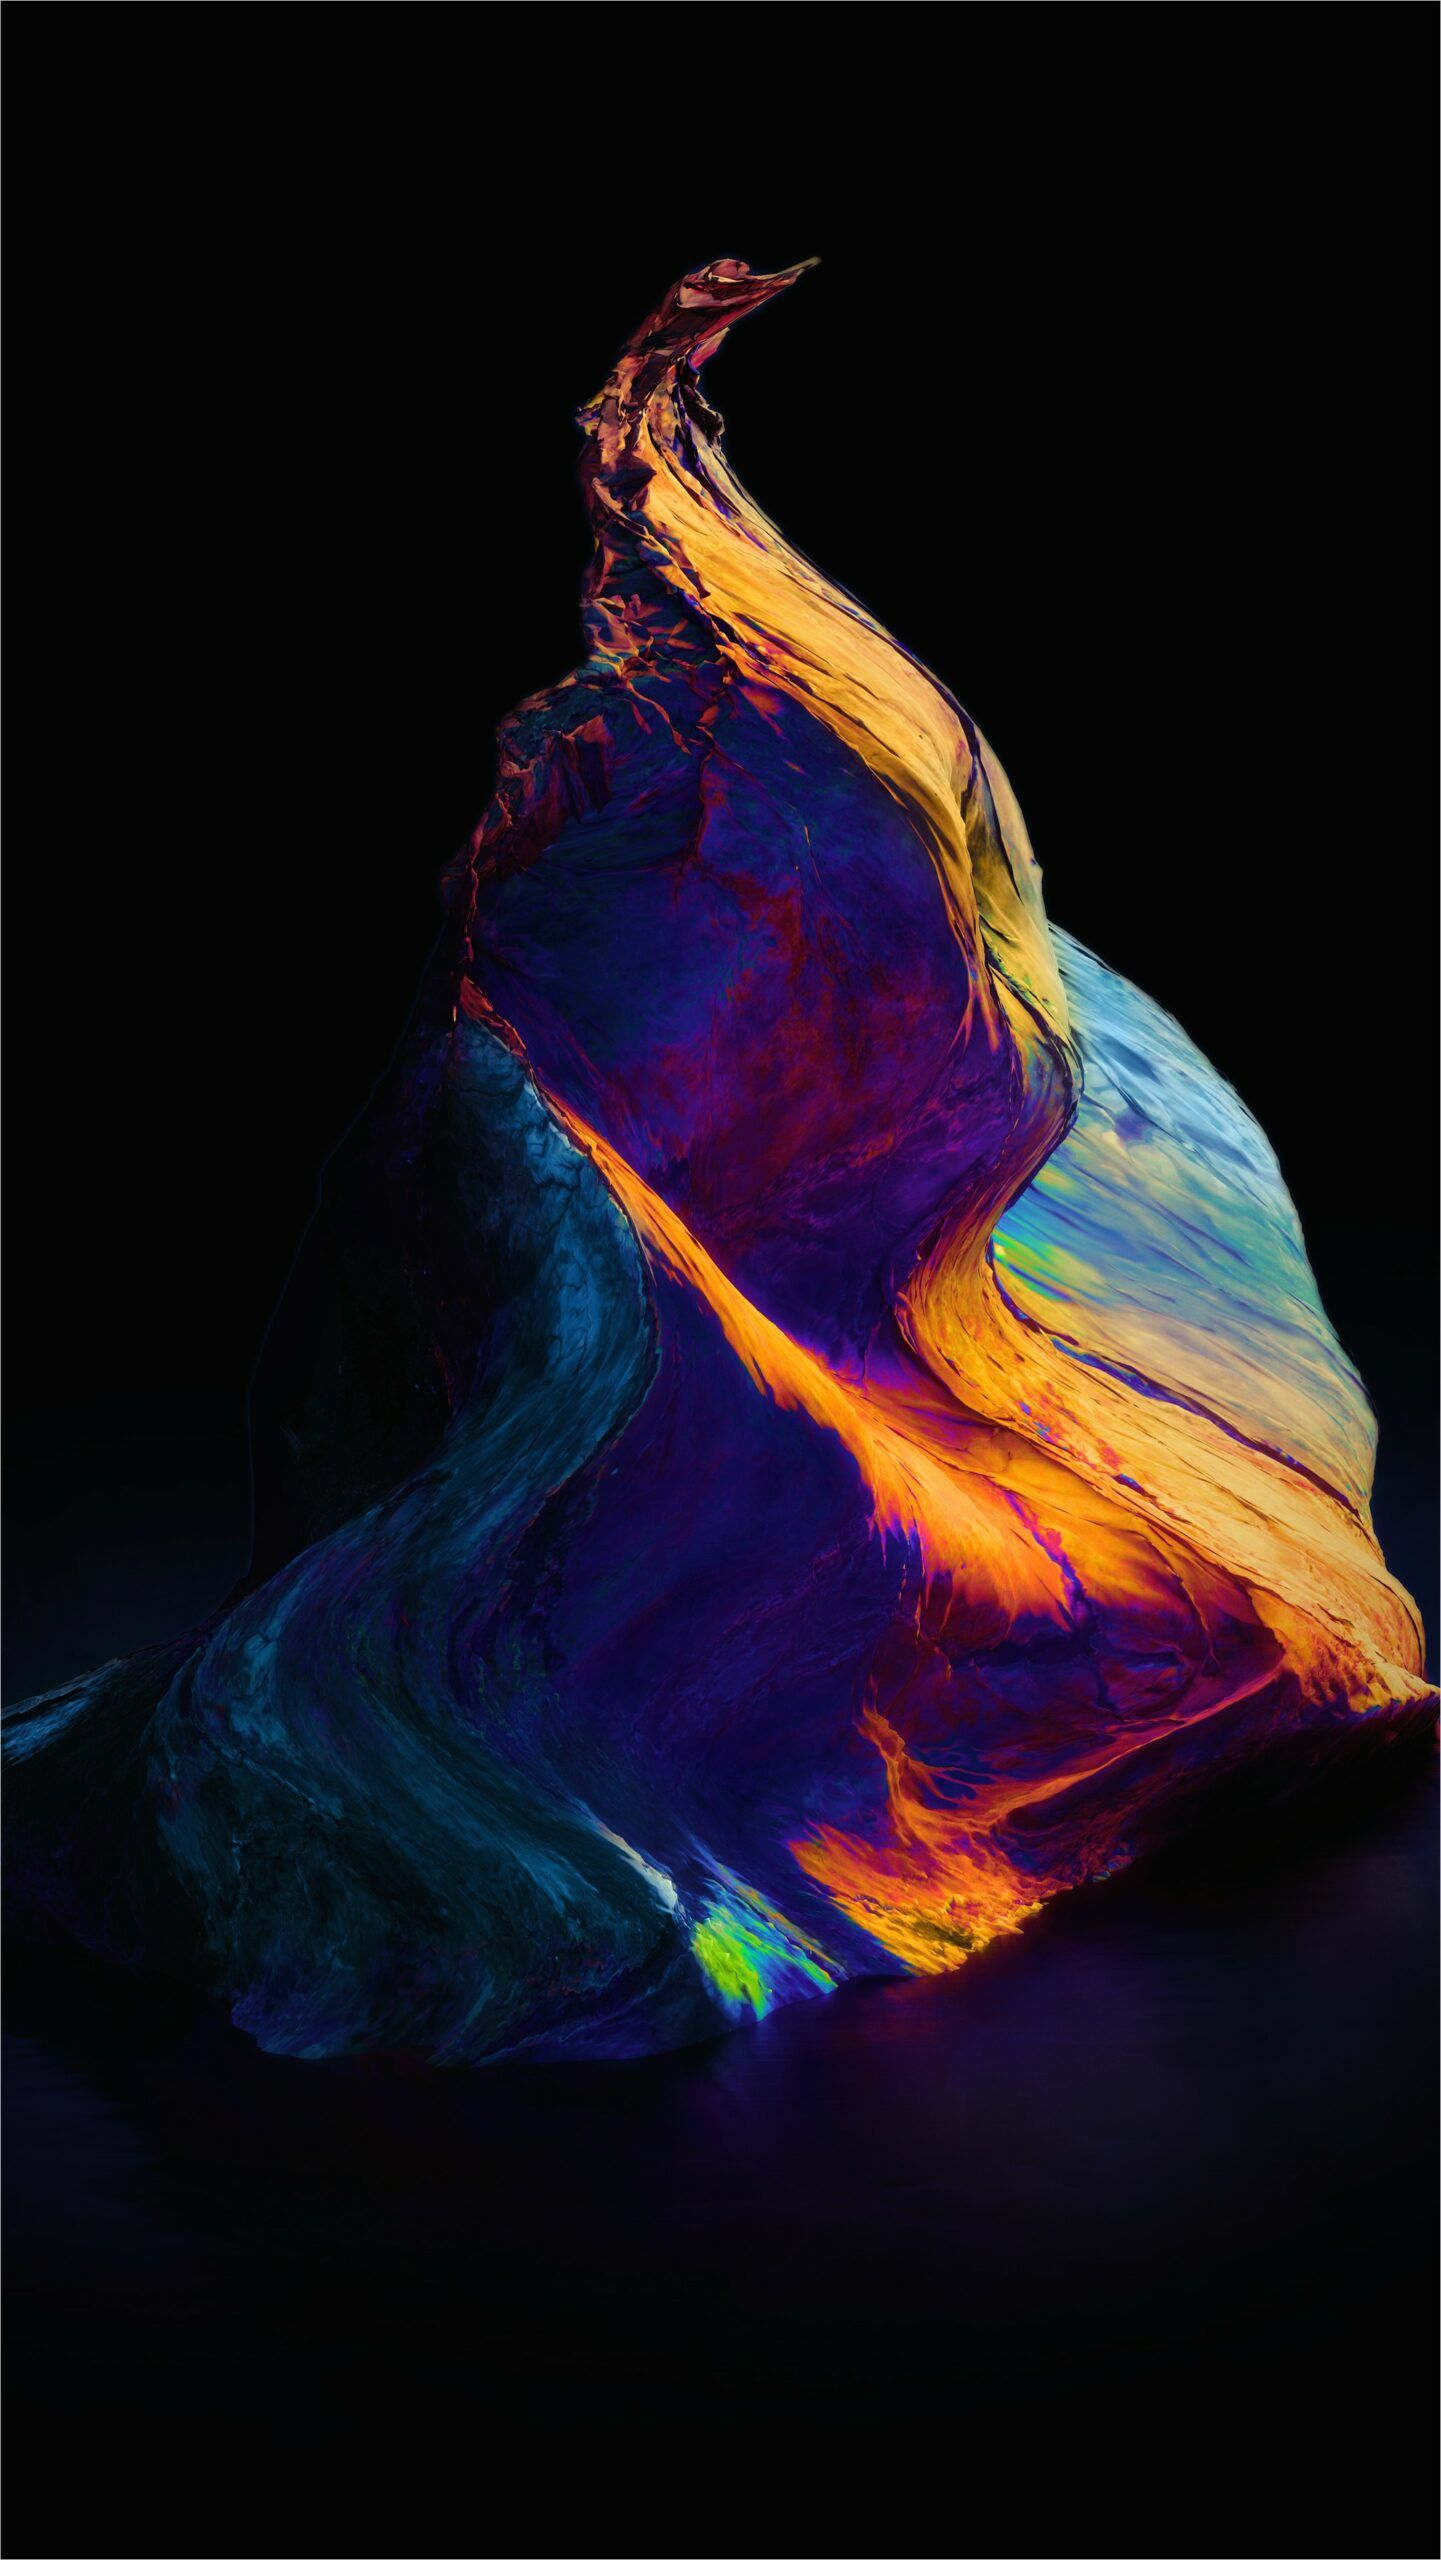 4k Amoled Wallpaper Reddit In 2020 Oneplus Wallpapers Qhd Wallpaper Samsung Wallpaper